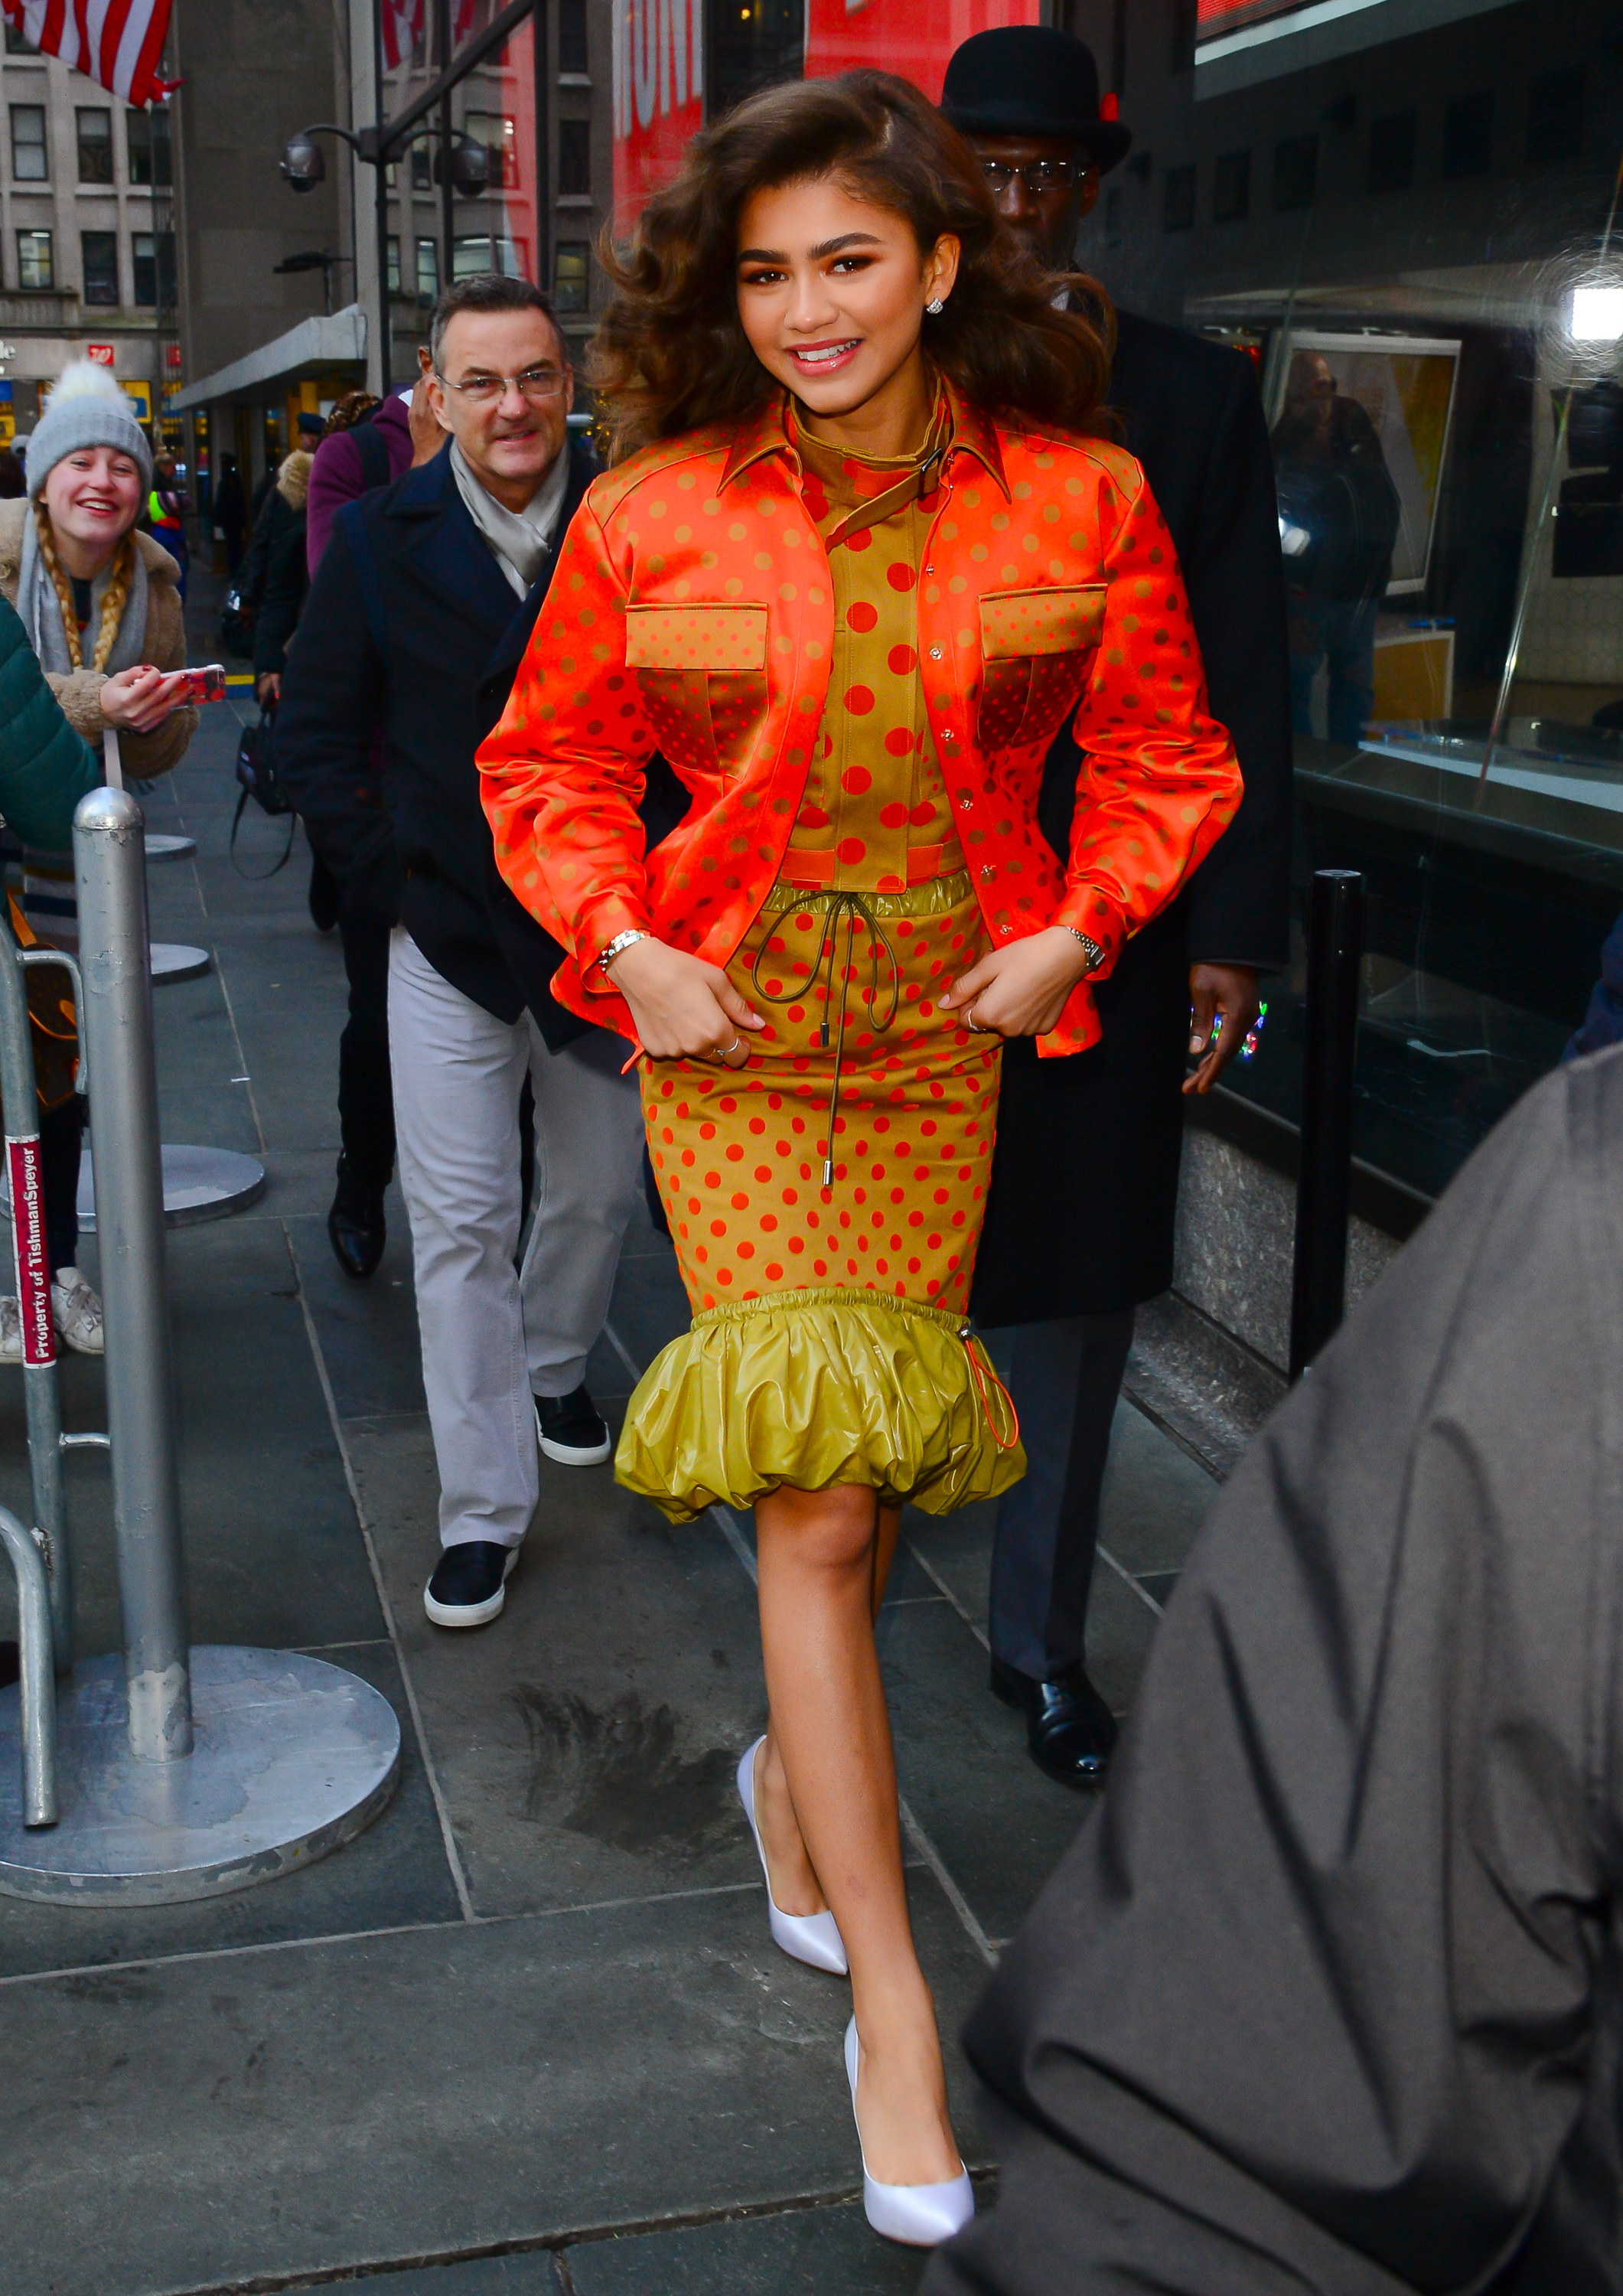 NEW YORK, NY - DECEMBER 11:  Actor Zendaya is seen outside the today show on December 11, 2017 in New York City.  (Photo by Raymond Hall/GC Images)